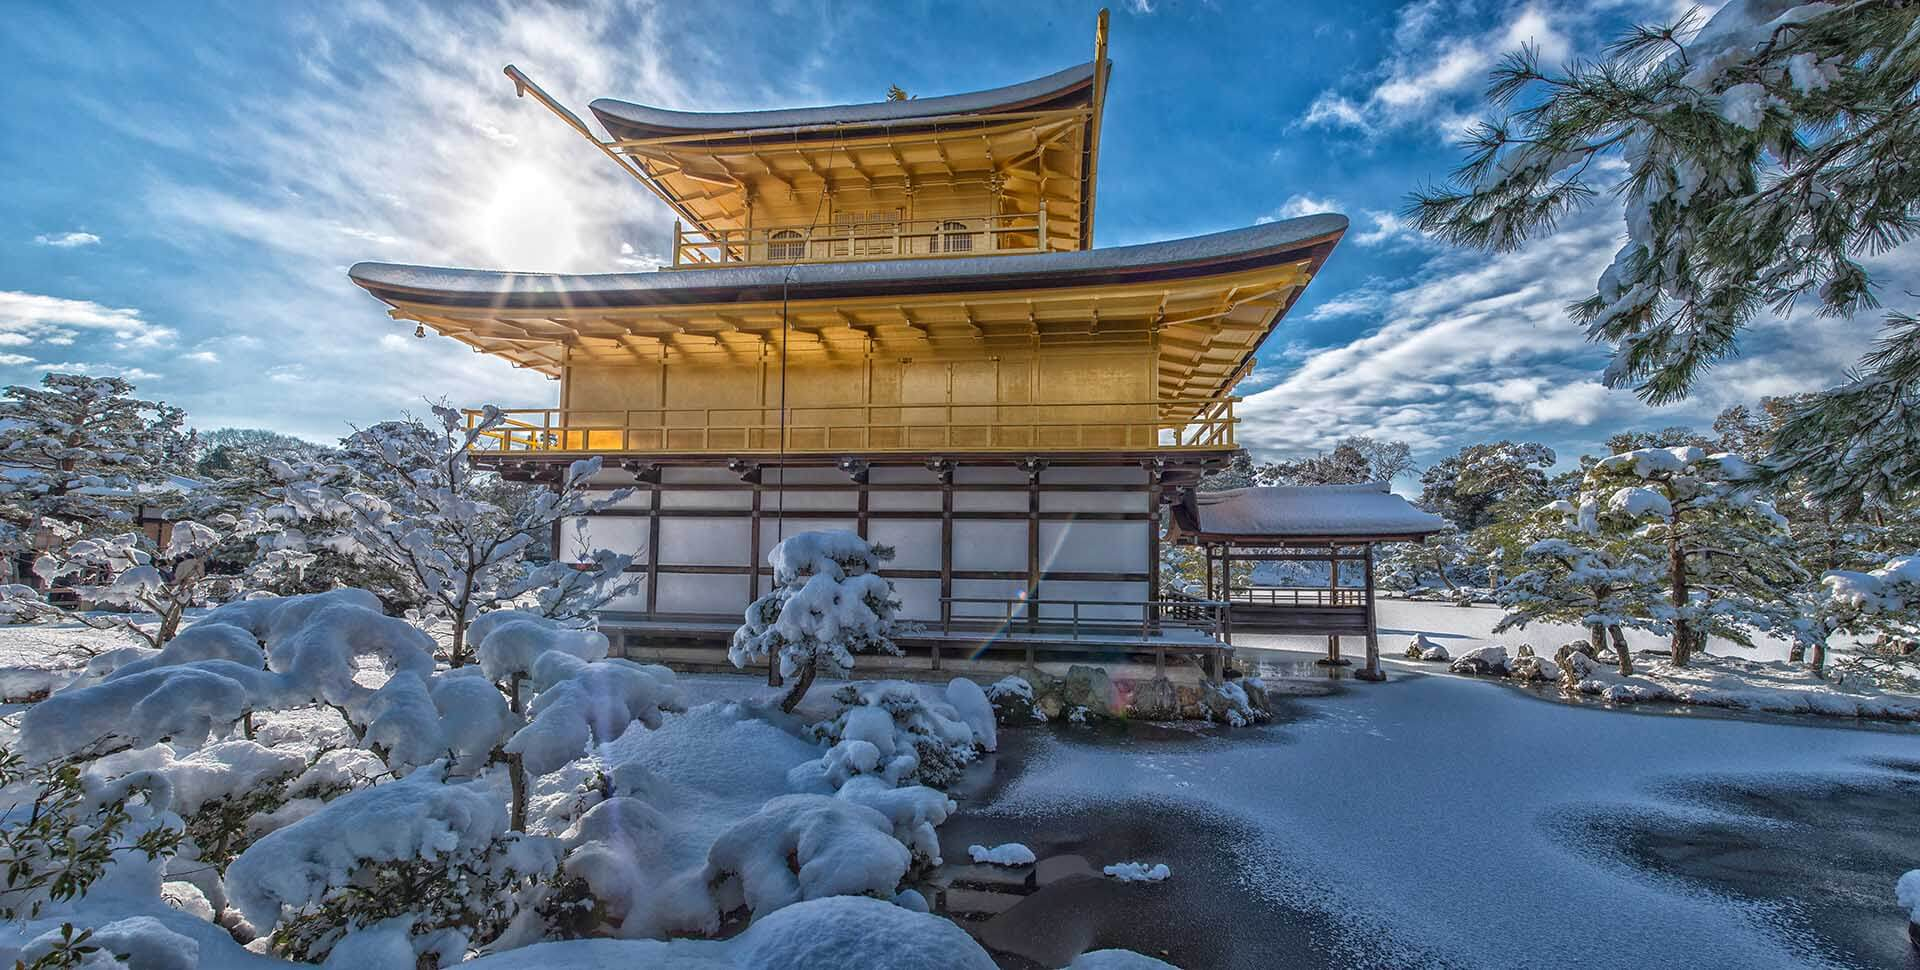 The snow in winter of Golden Pavilion Temple in Kyoto, Japan. The temperature in cold winter will drop to -10 degree and reach to 40 degree hot in the summer.